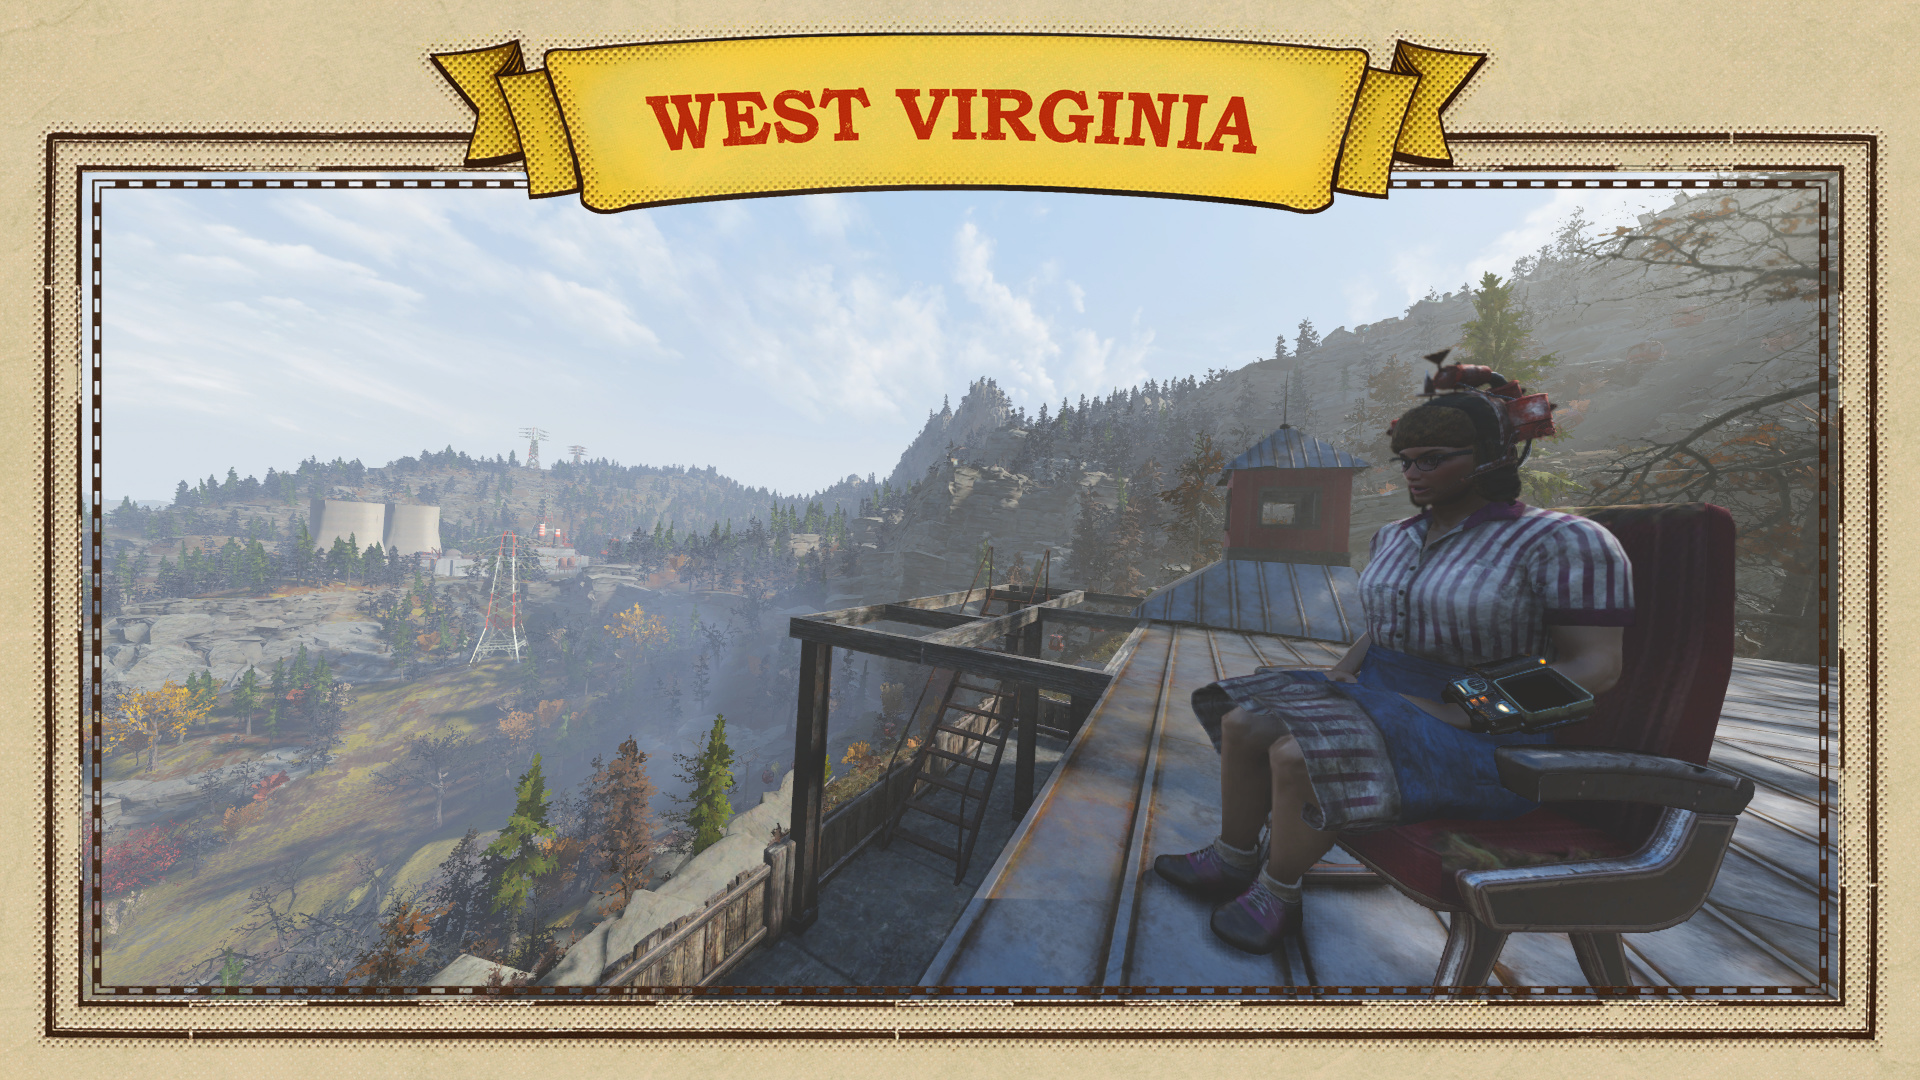 Fallout 76 - Multiplayer, online, BGS Austin - Games